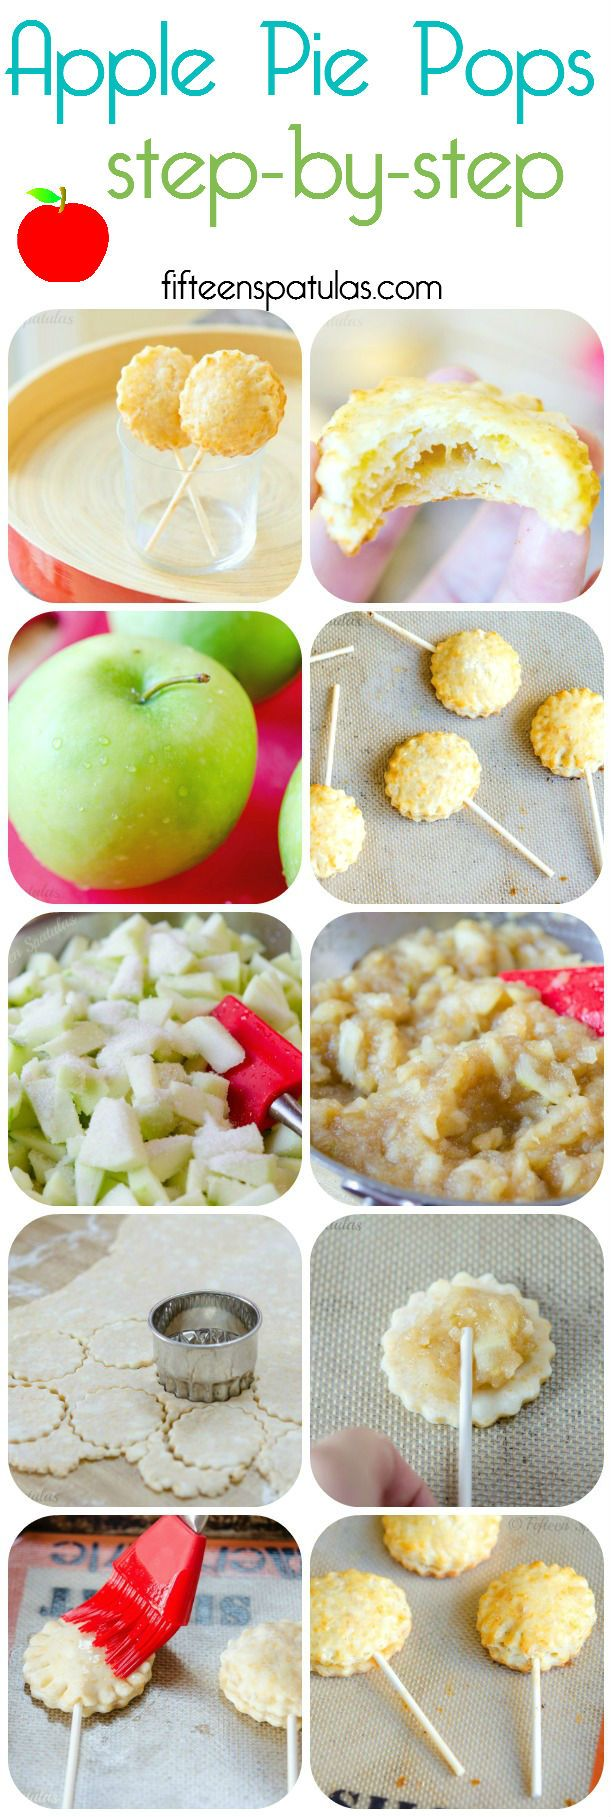 Apple Pie Pops with Cheddar Crust from @Fifteen Spatulas | Joanne Ozug #recipe